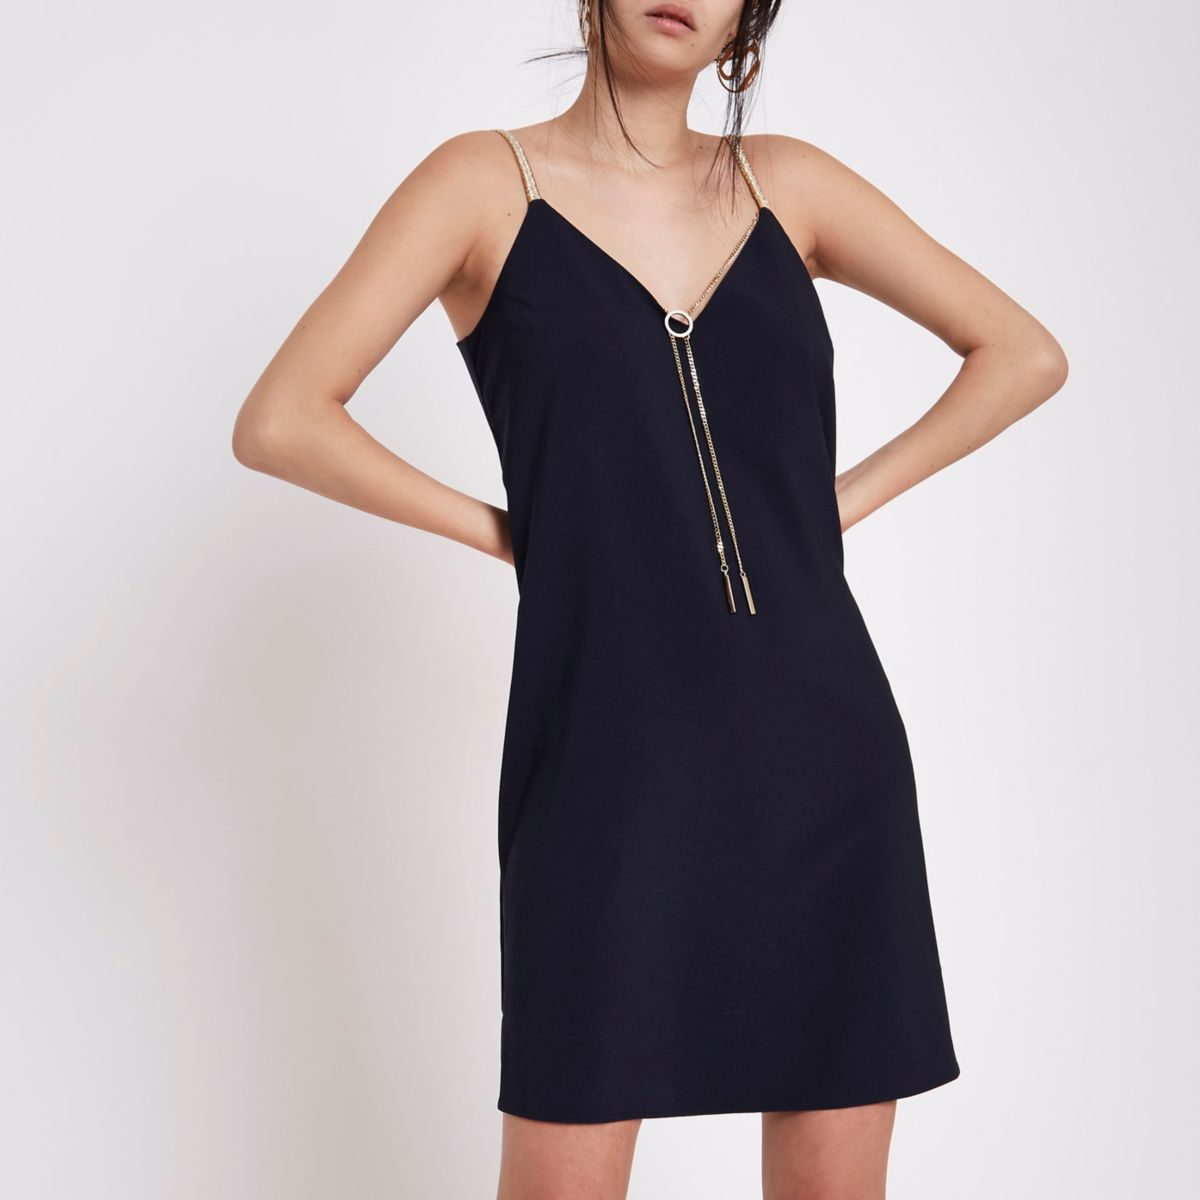 Navy slip dress with detachable chain